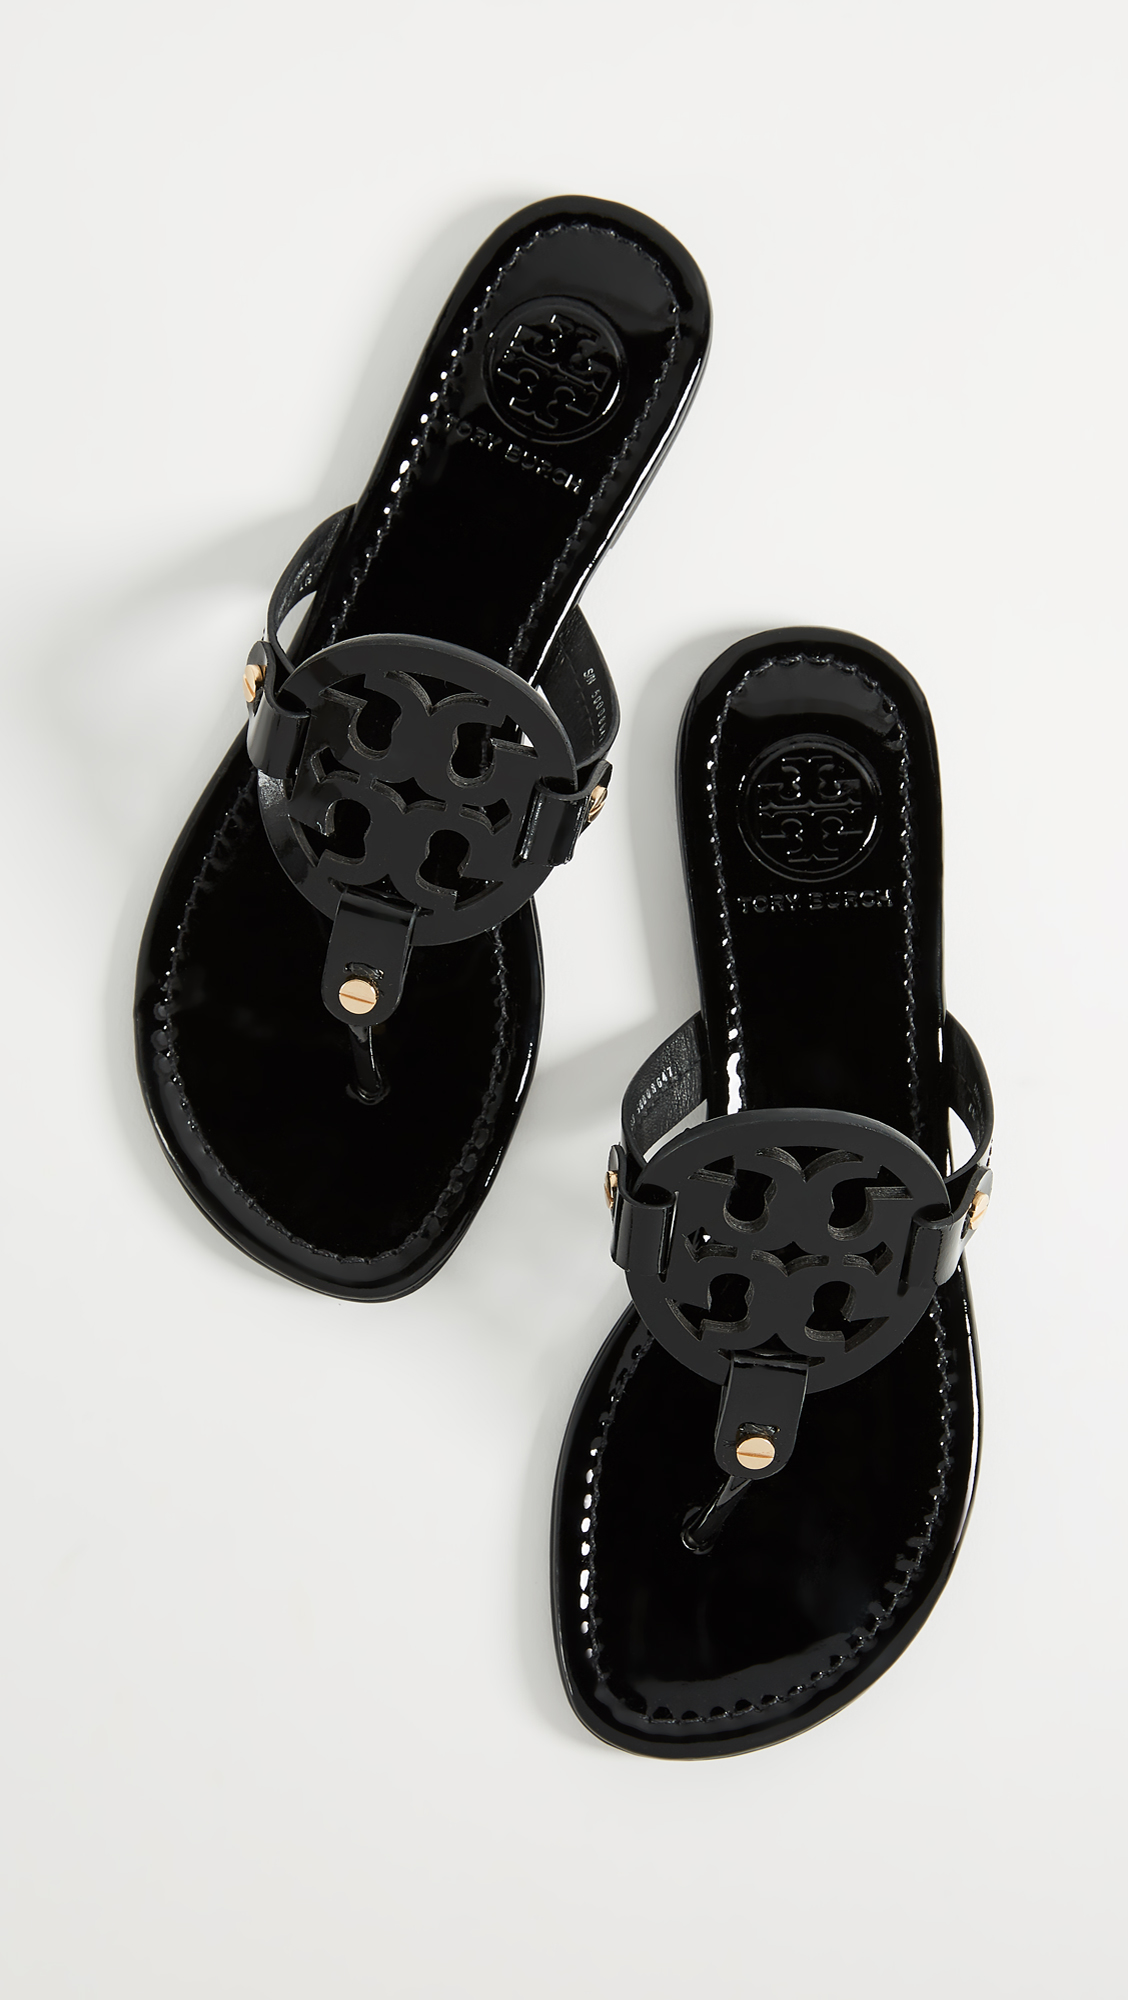 680e2baa7fd2 Tory Burch Miller Thong Sandals